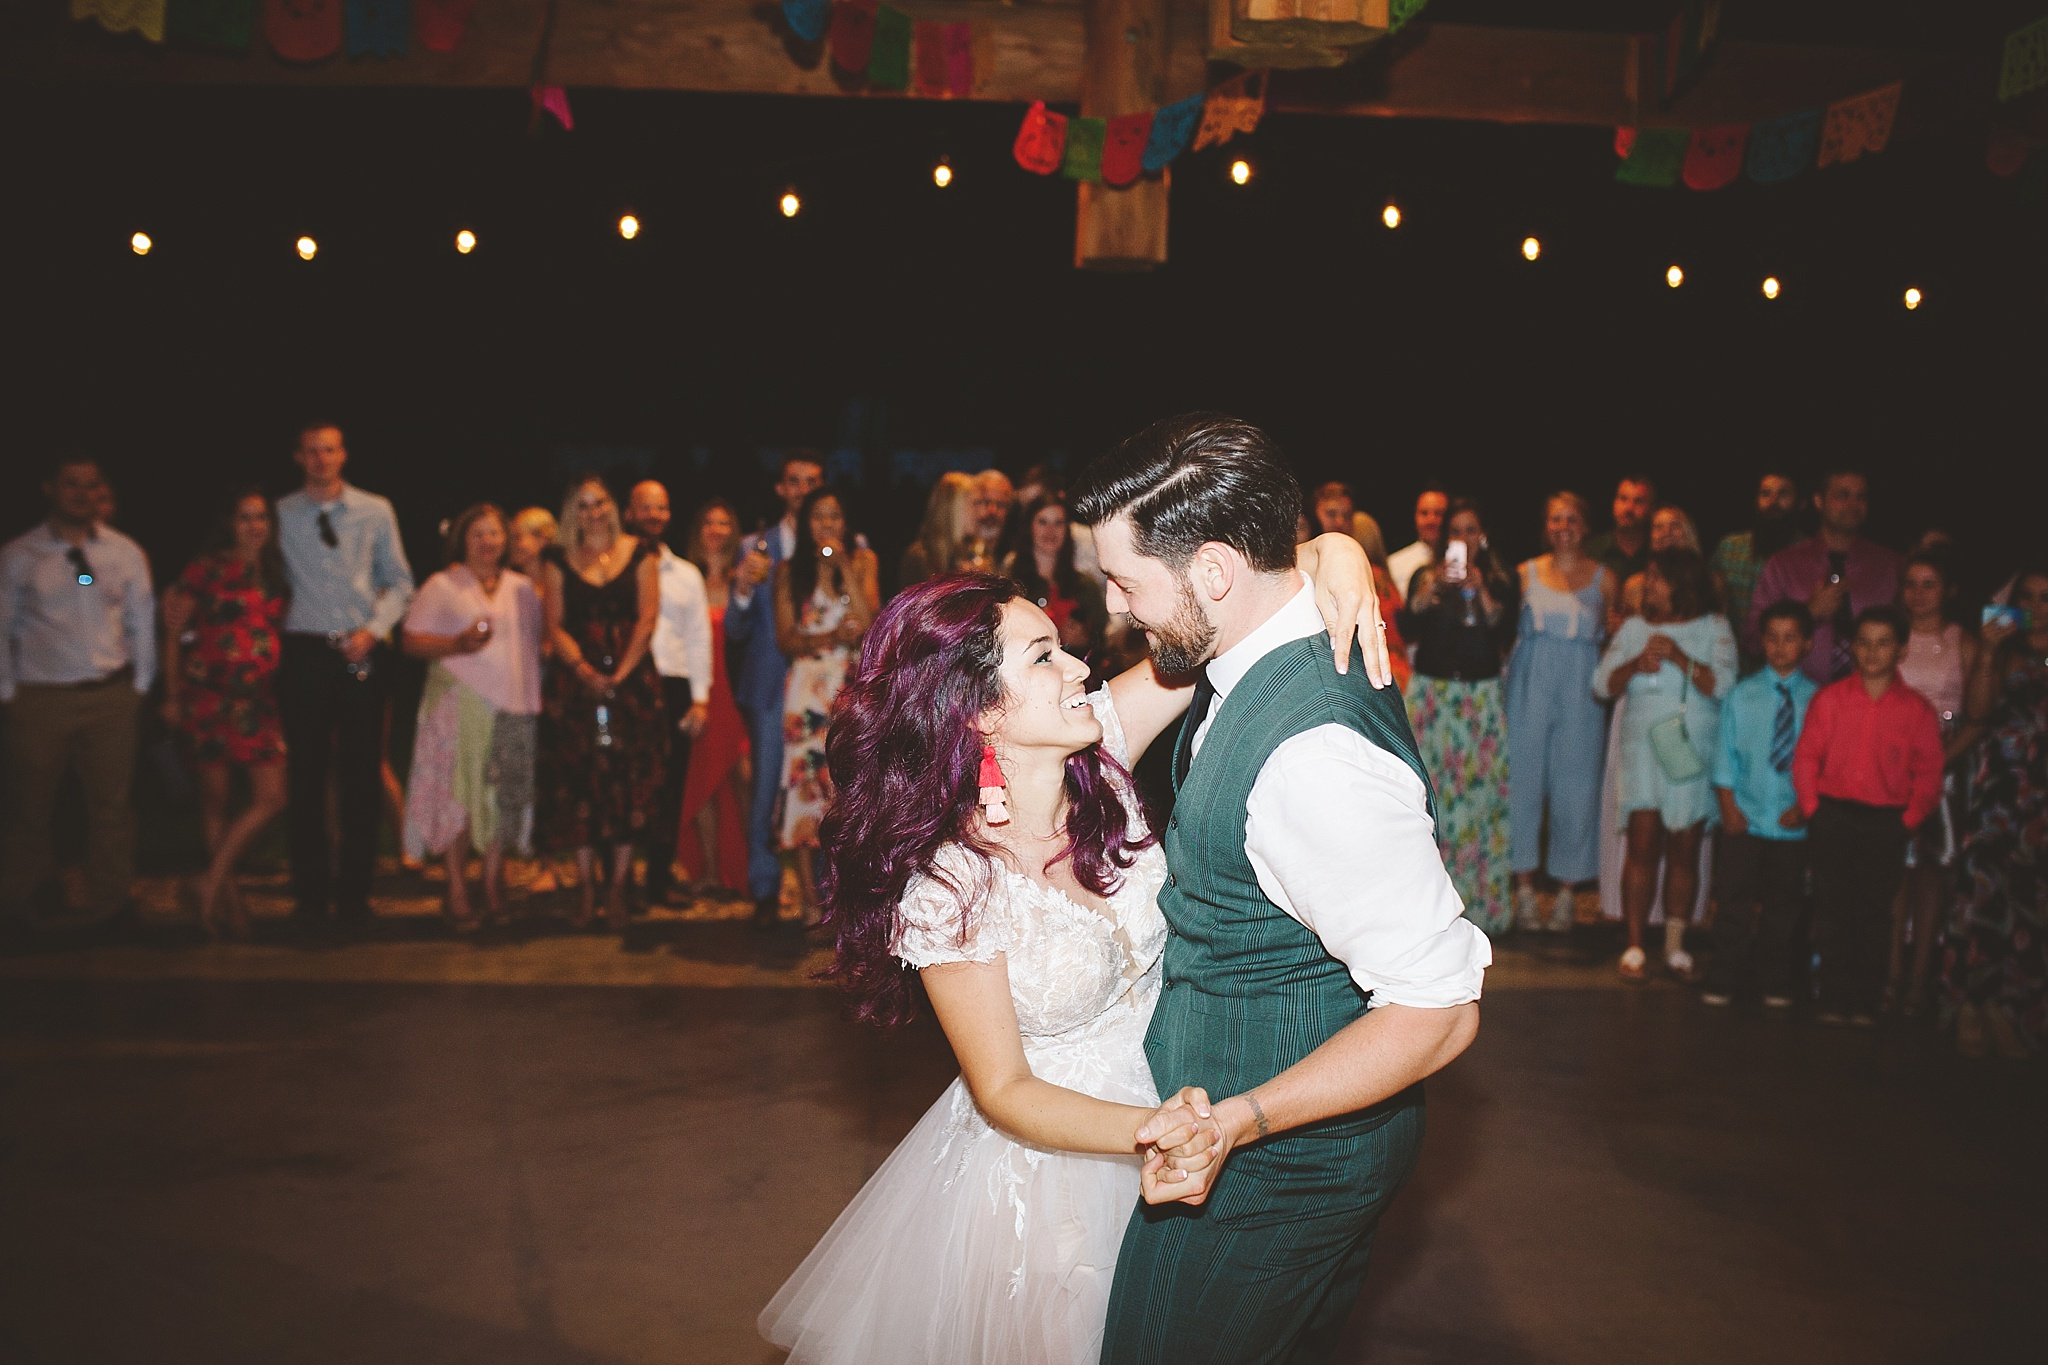 happy emotional first wedding dance